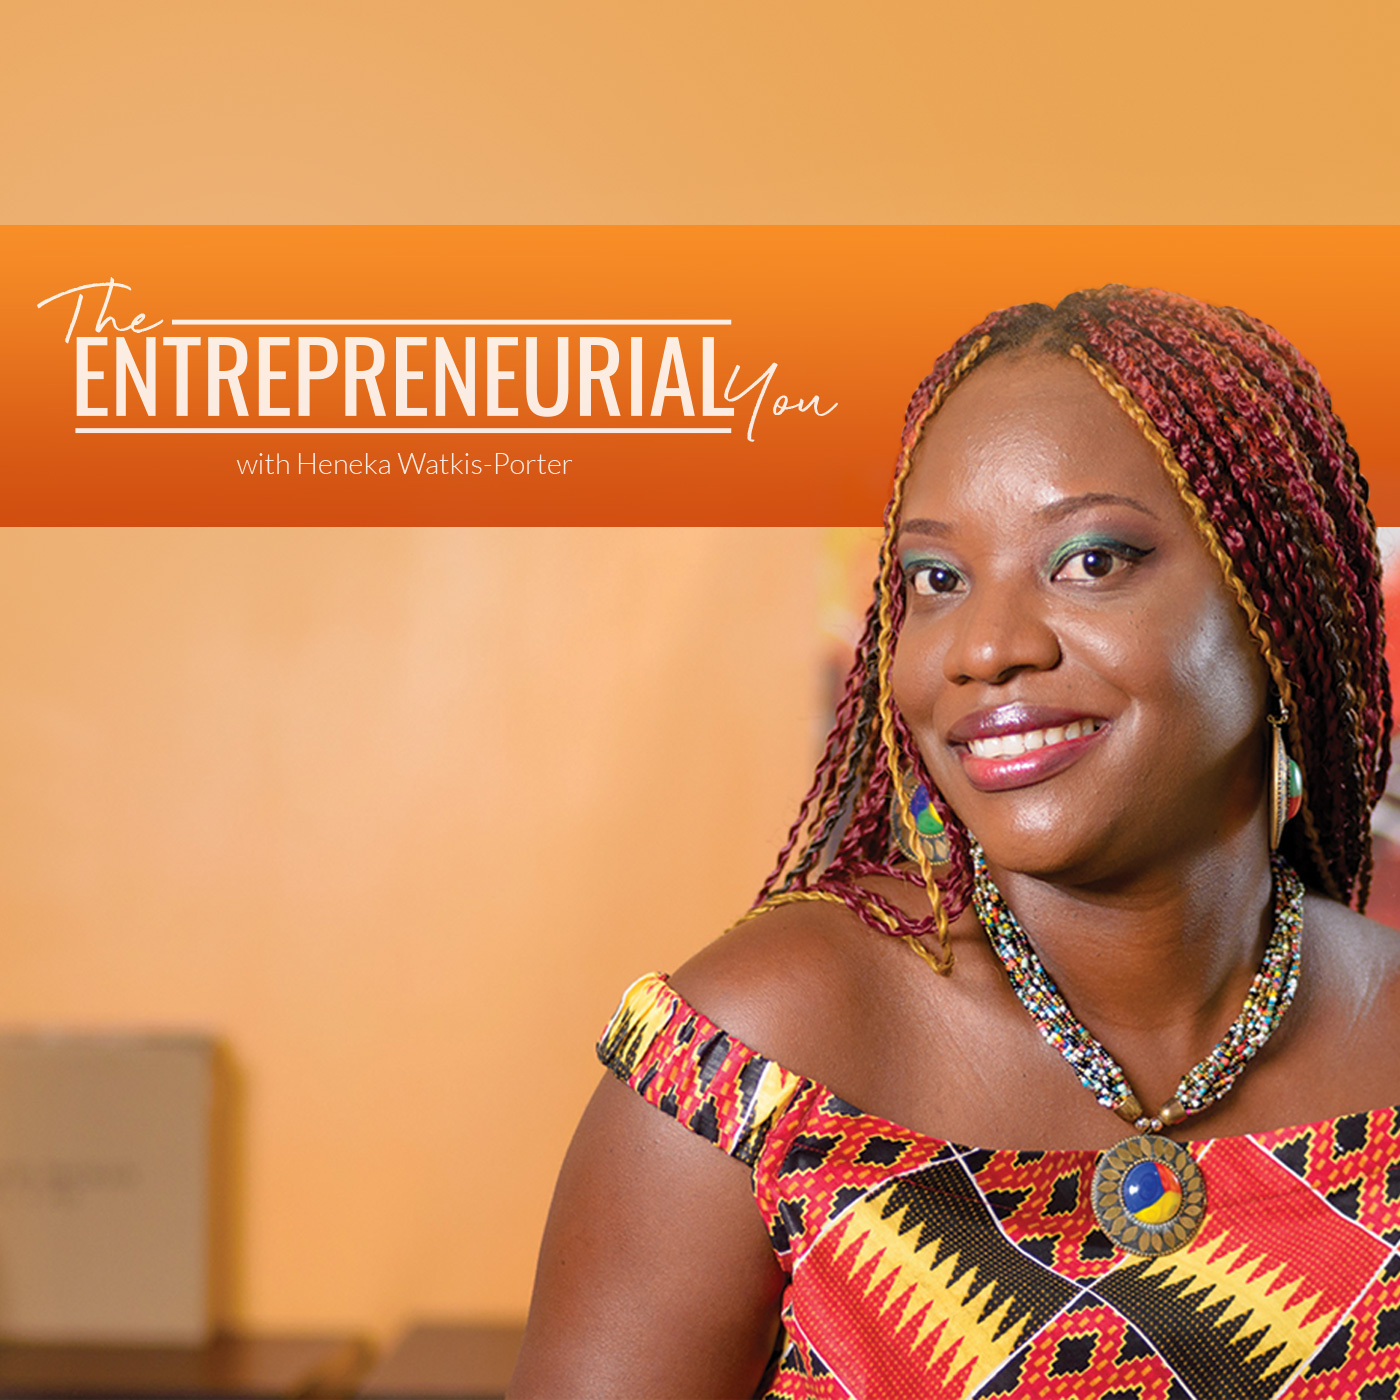 The Entrepreneurial You